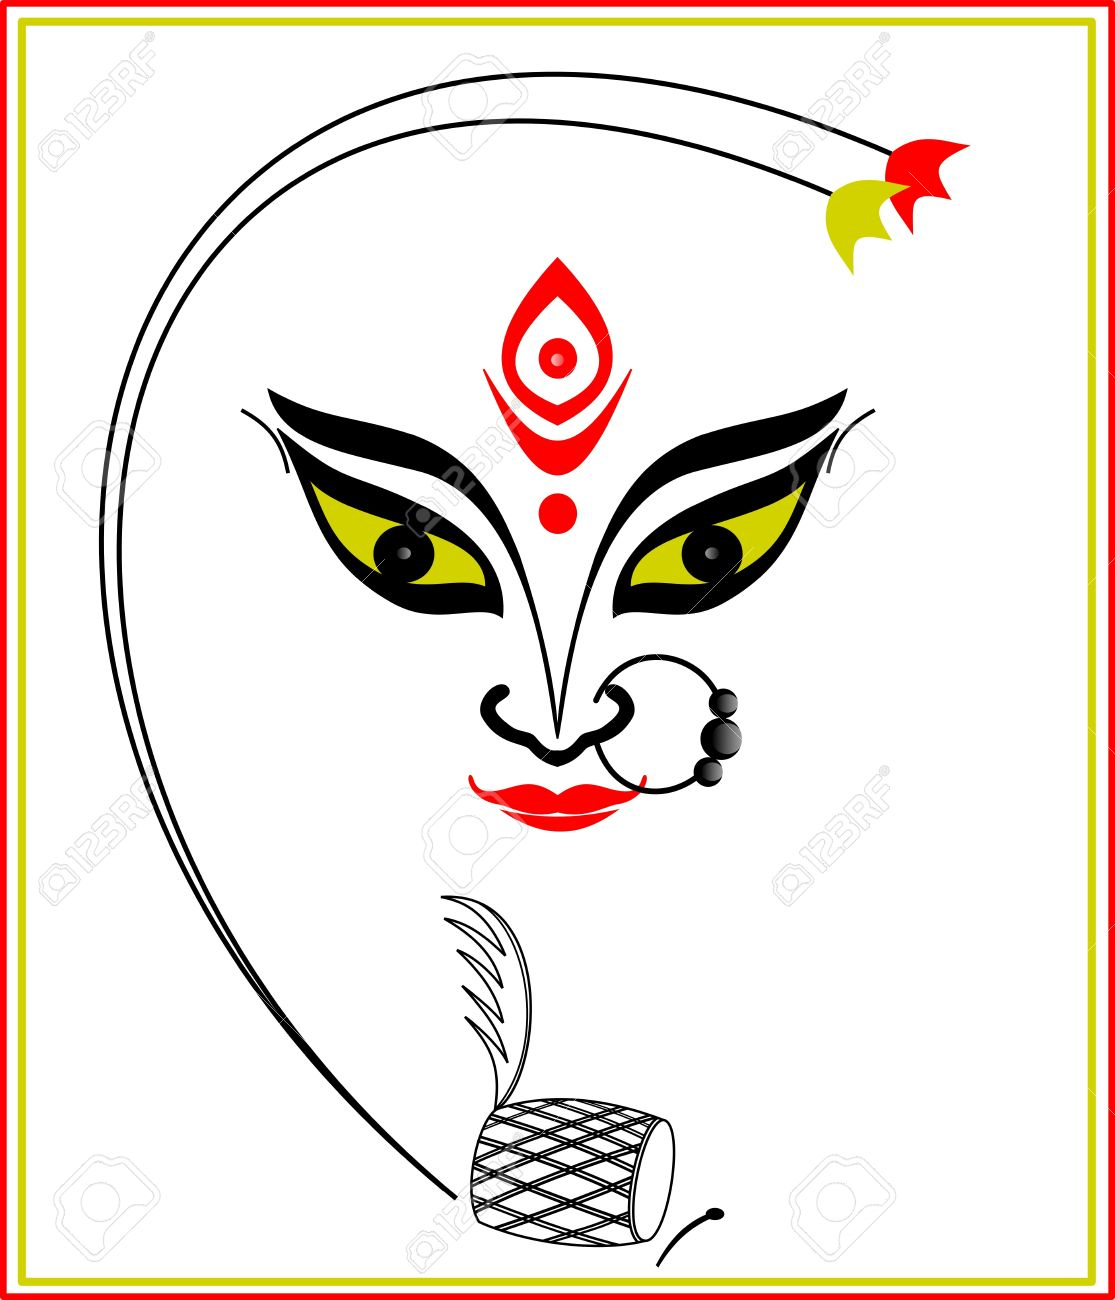 Maa Durga Face Sketch Full Hd Durga Maa Face Sketches Hindu.